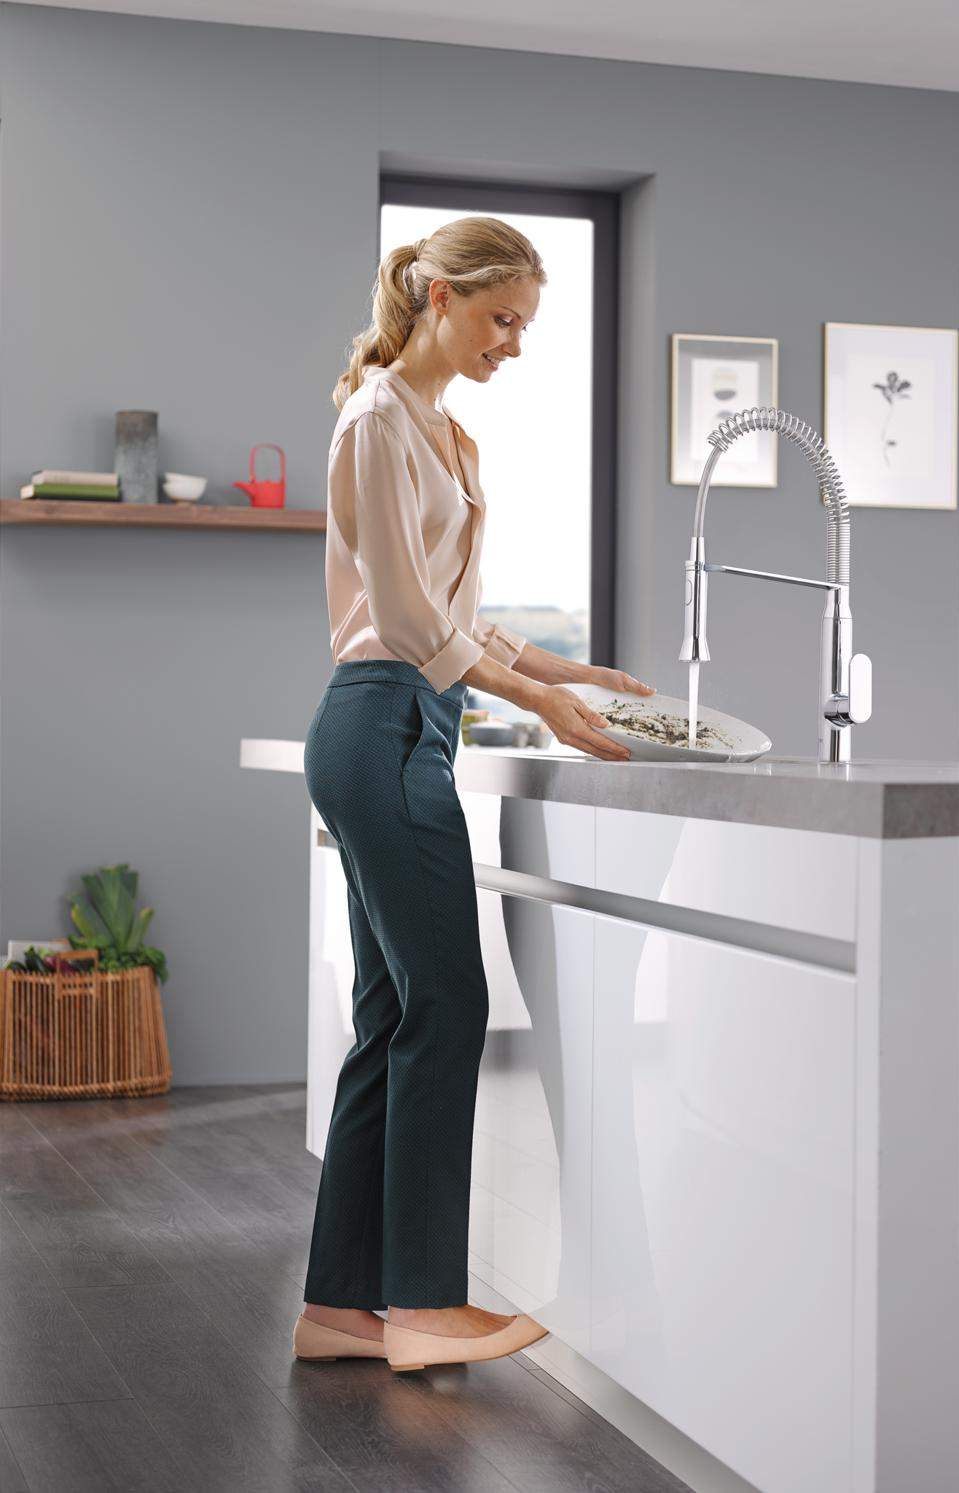 Another way to avoid touching the faucet is with foot activation as this one from Grohe demonstrates.